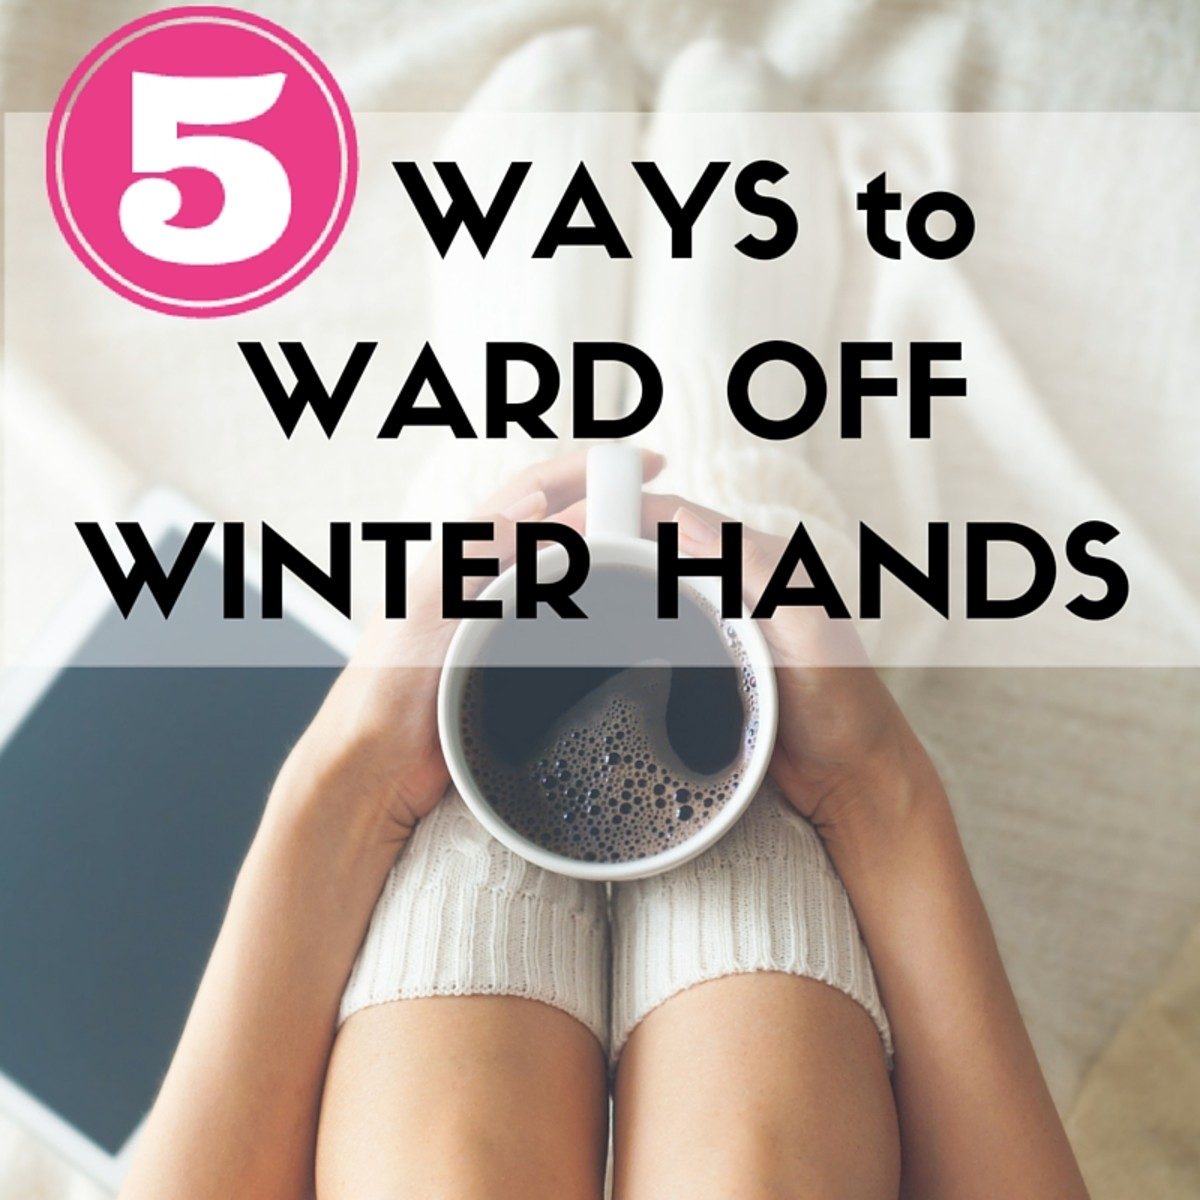 WARD OFF WINTER HANDS